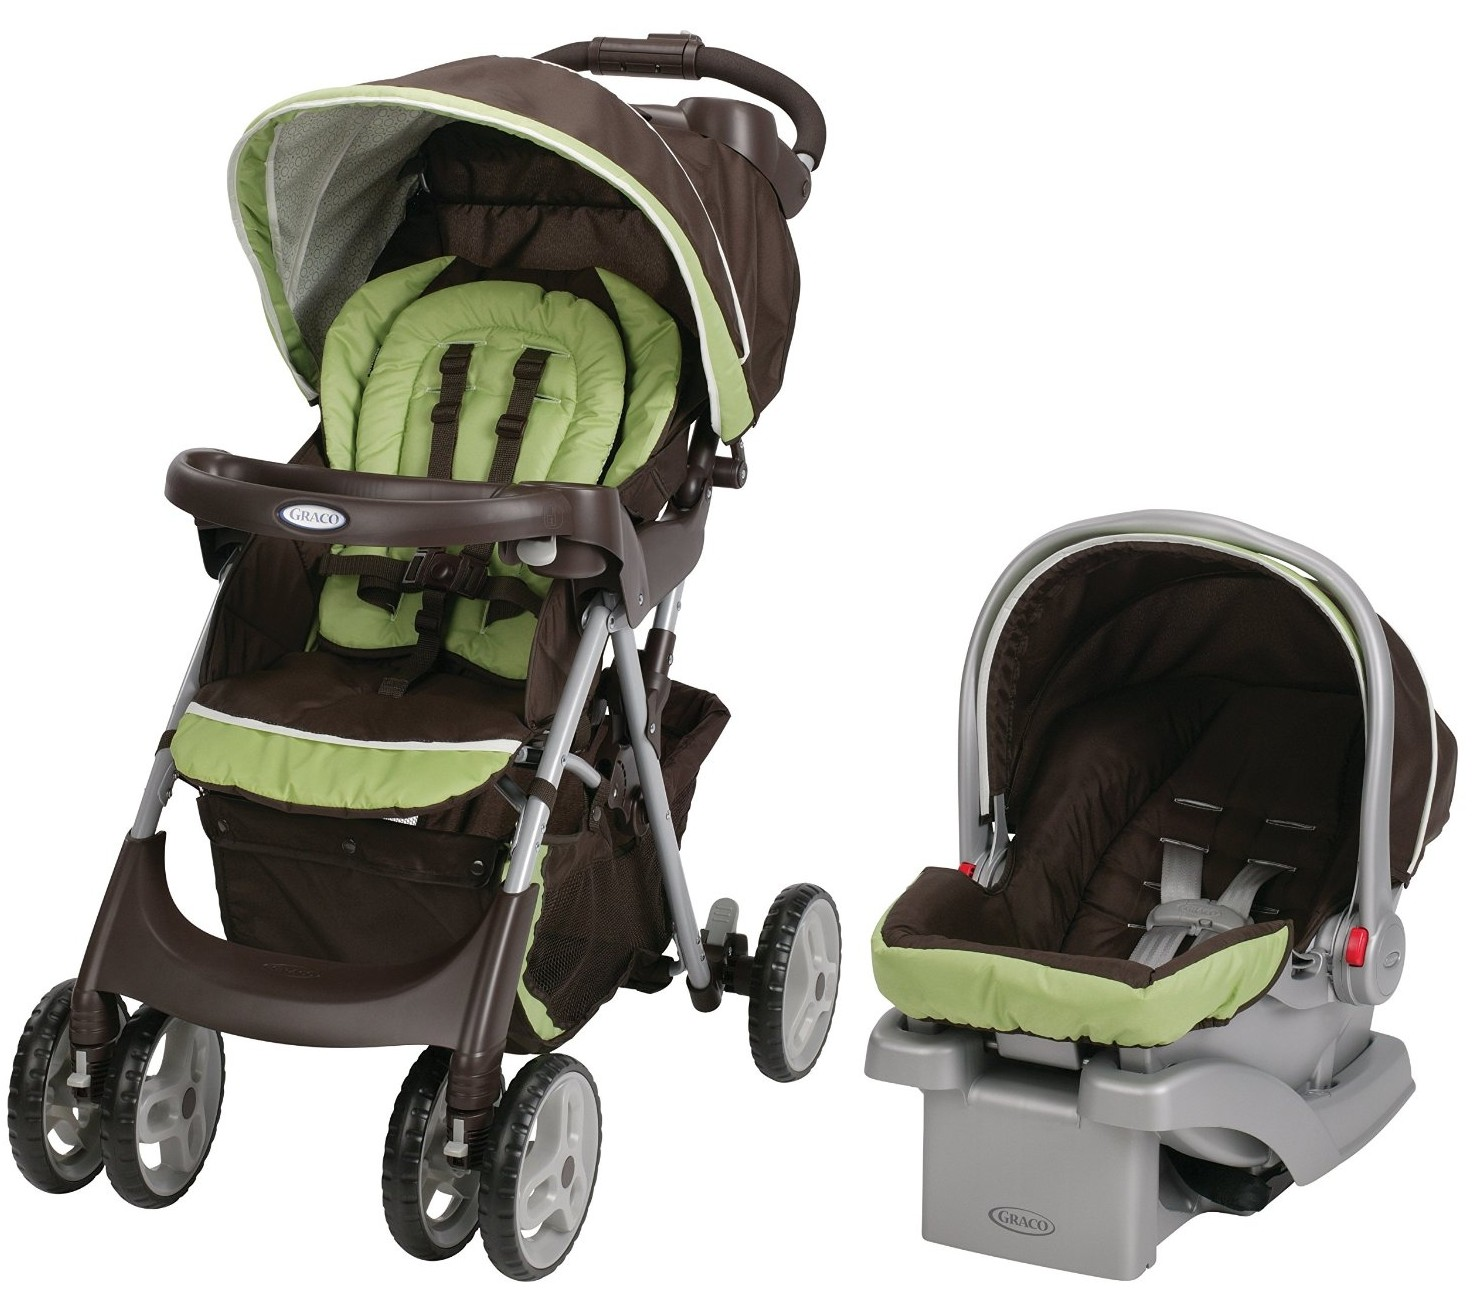 Graco Comfy Cruiser Click Connect Travel System Reviews